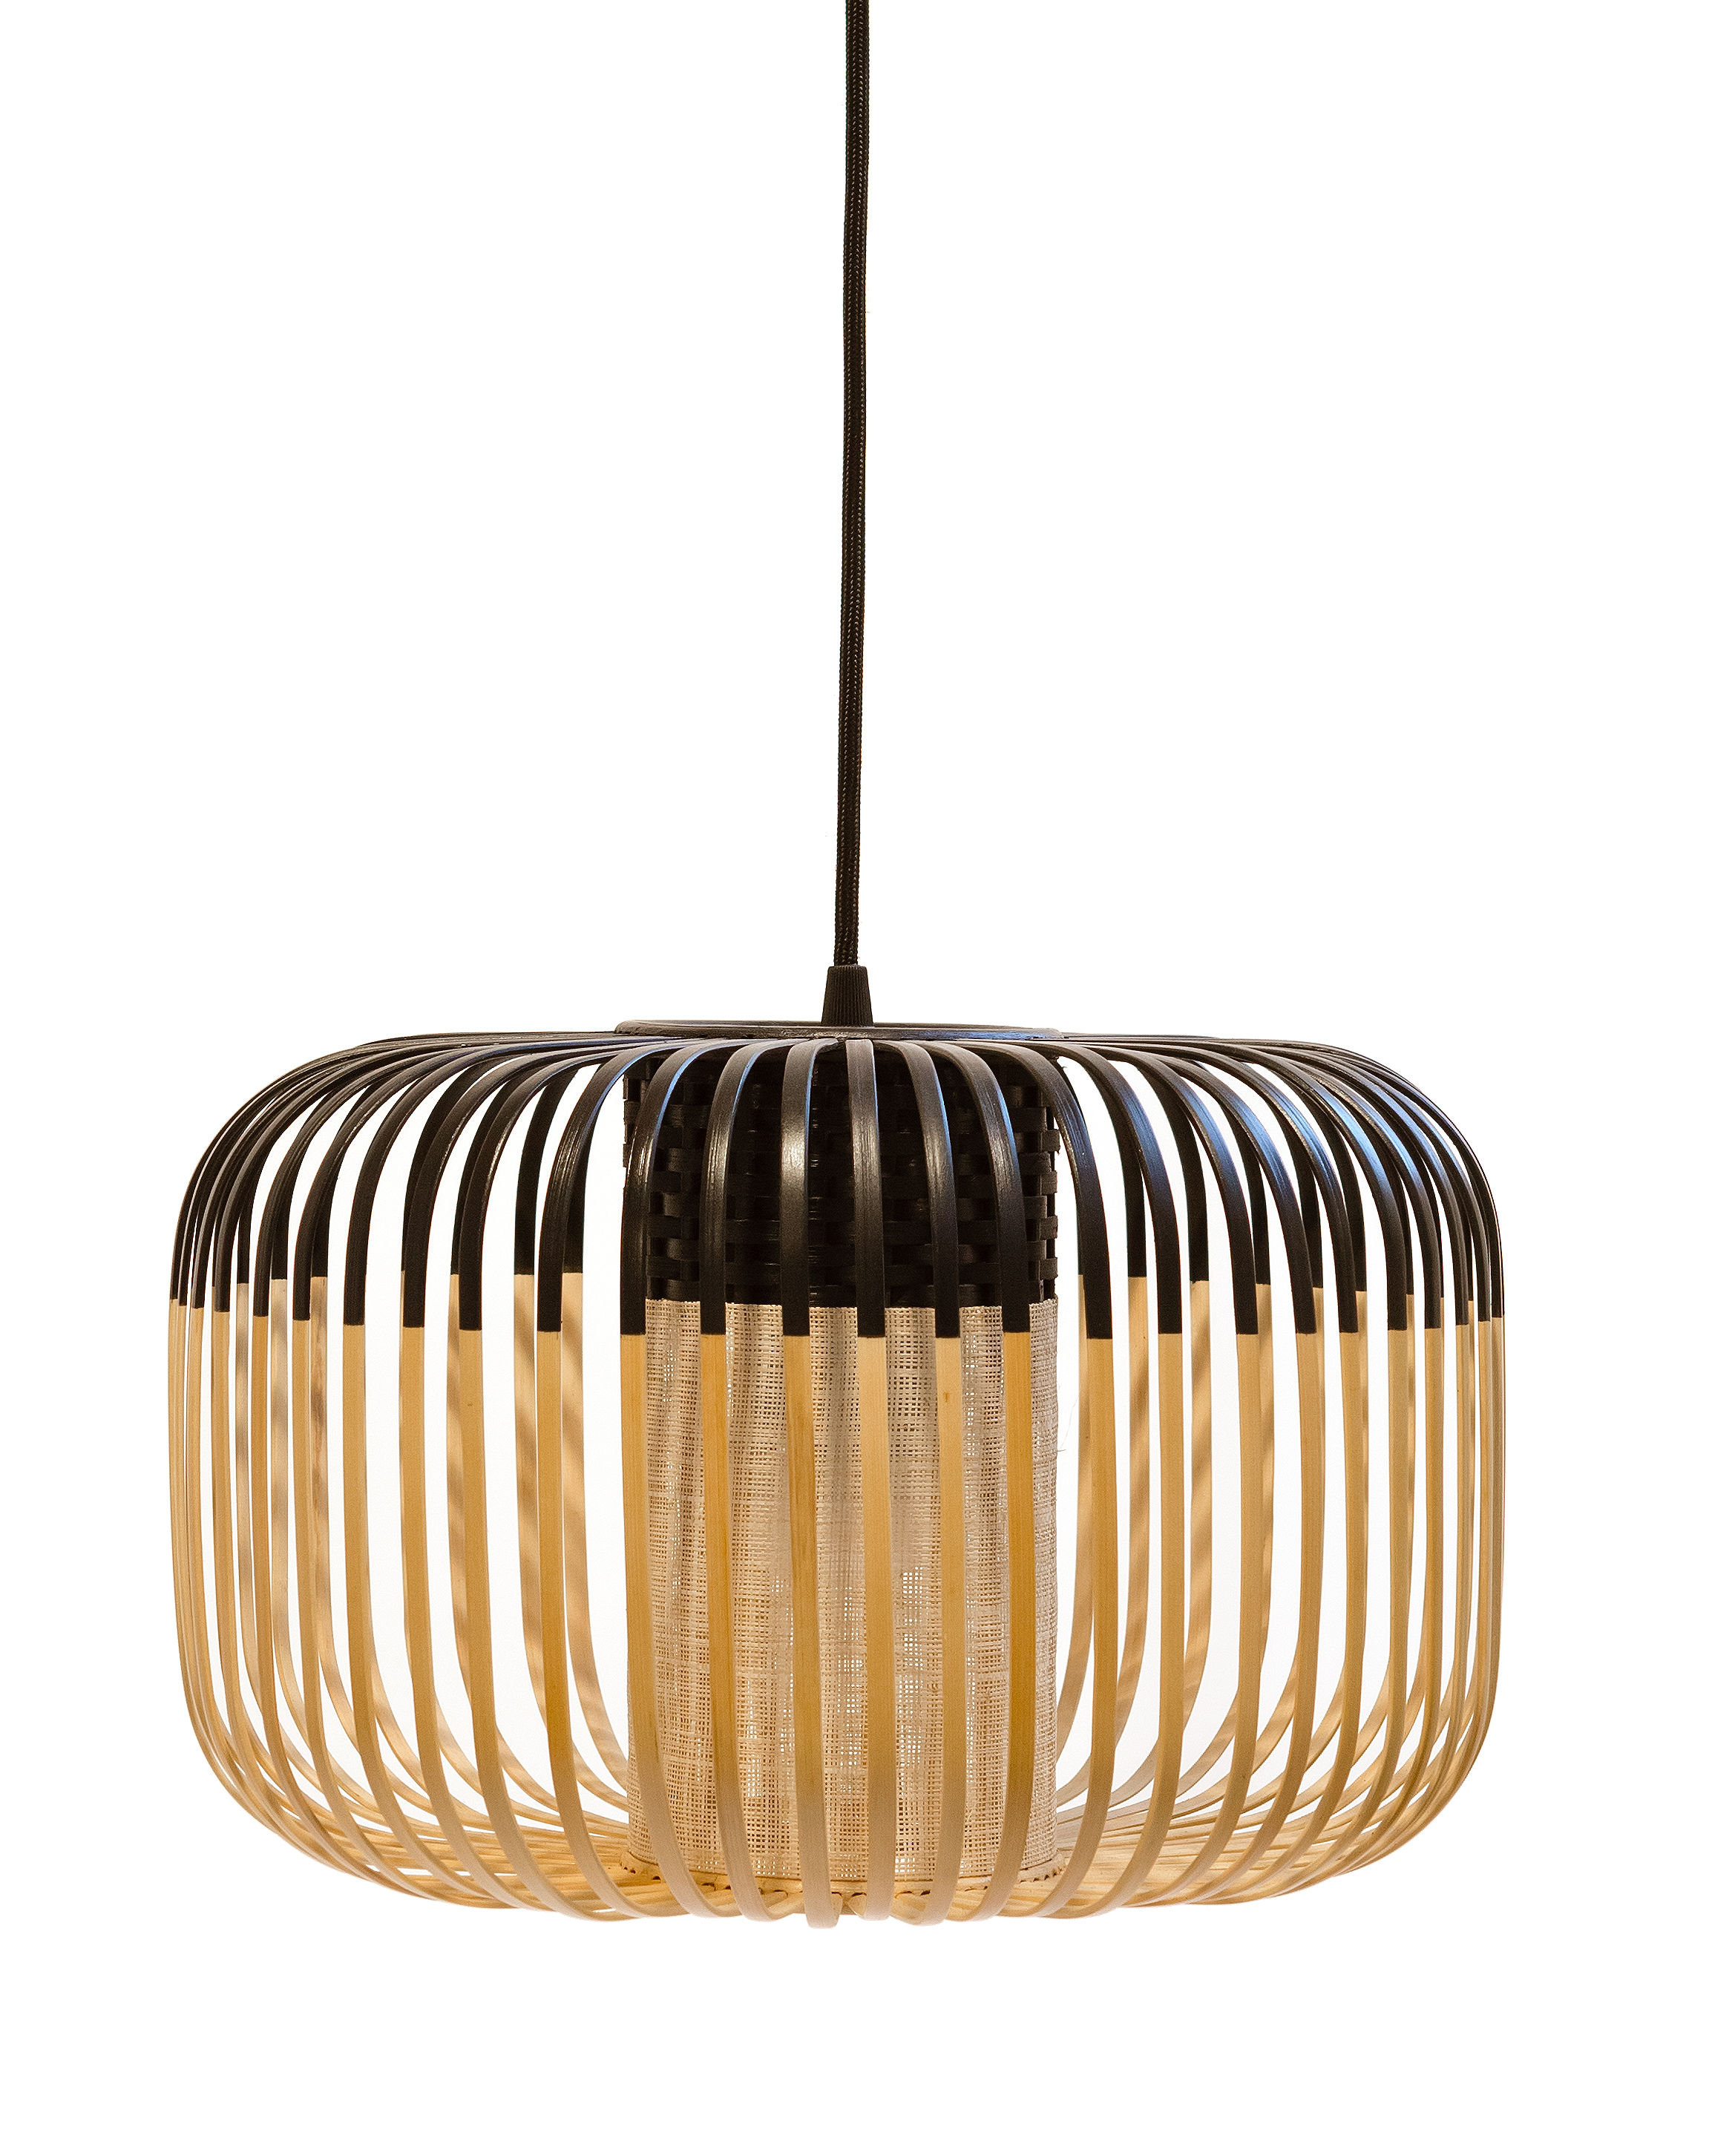 Lighting - Pendant Lighting - Bamboo Light S Outdoor Pendant - H 23 x Ø 35 cm by Forestier - Black / Natural - Natural bamboo, Rubber